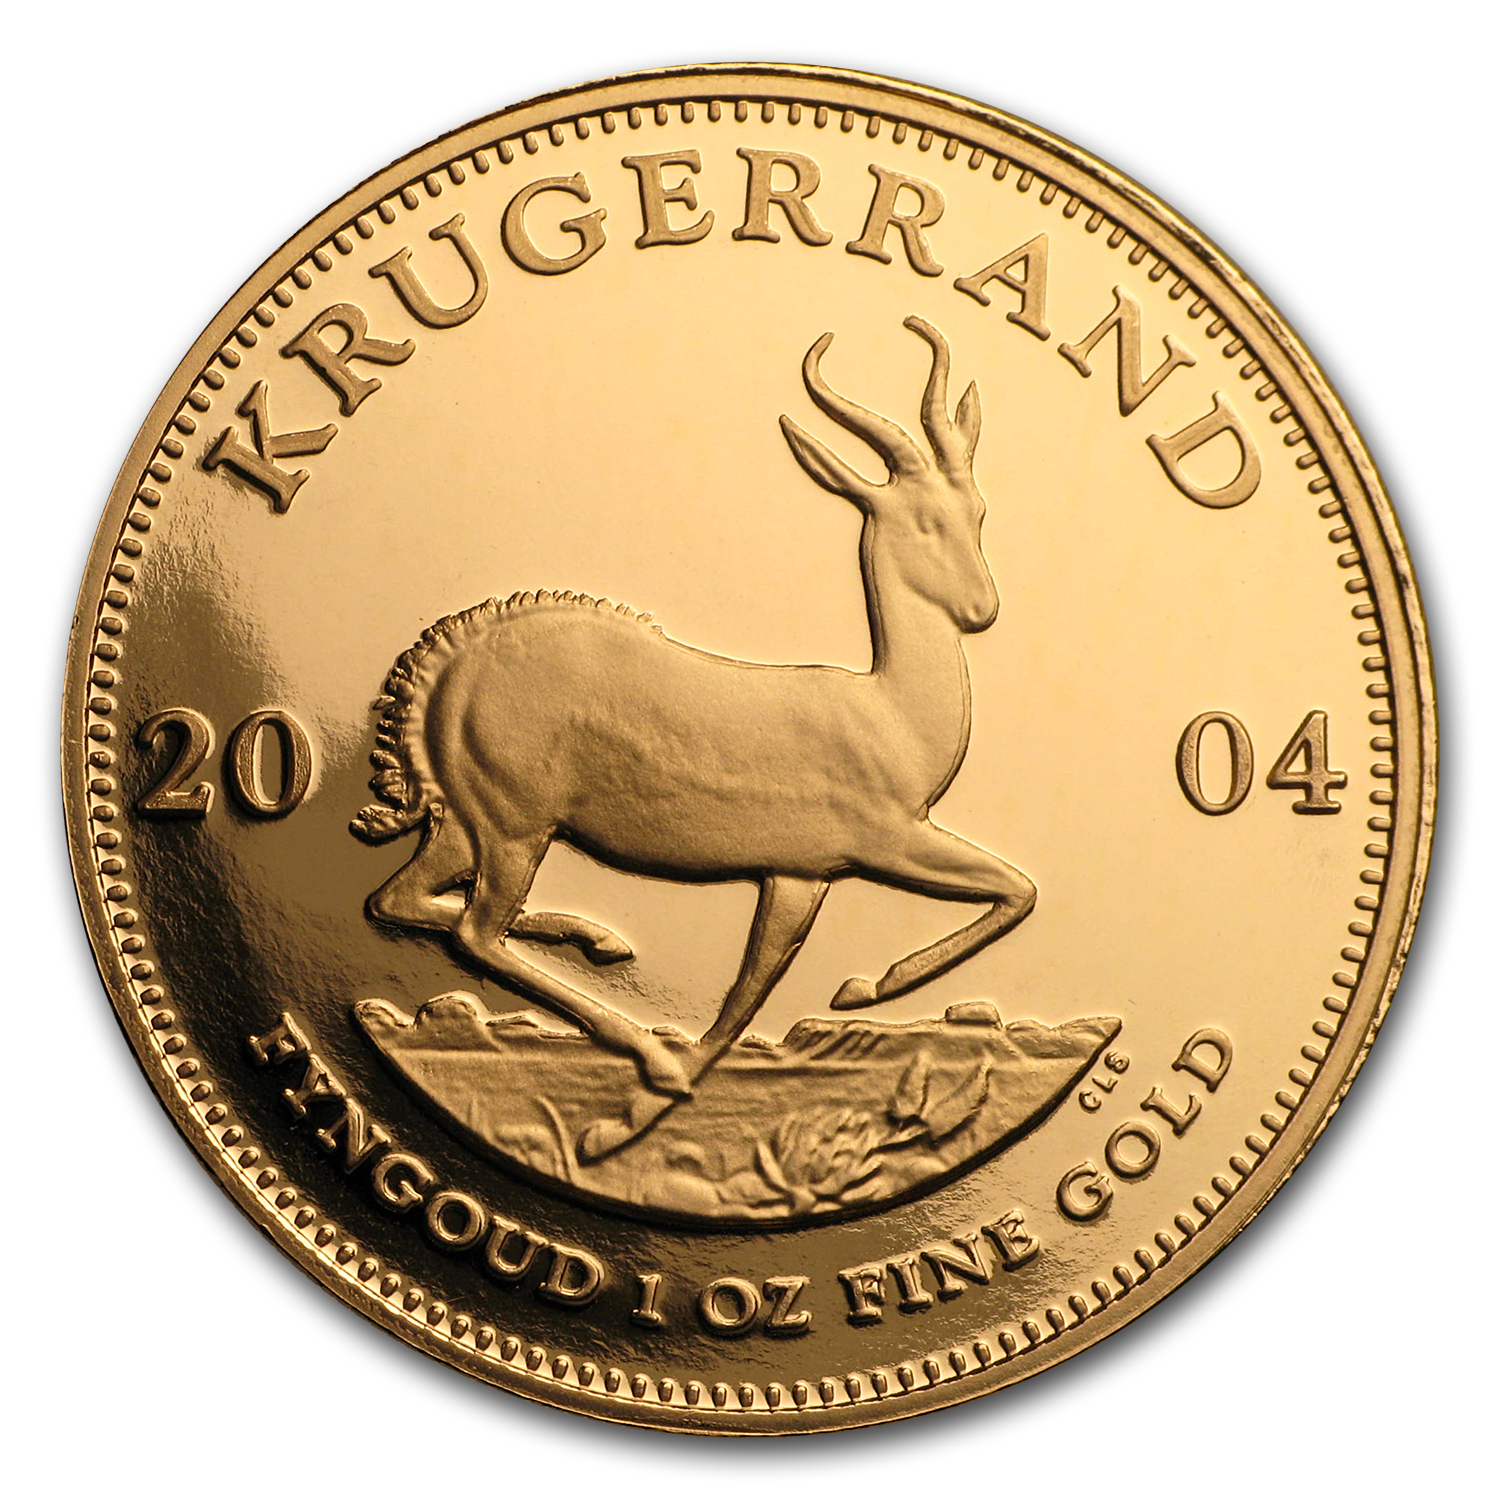 2004 South Africa 1 oz Proof Gold Krugerrand